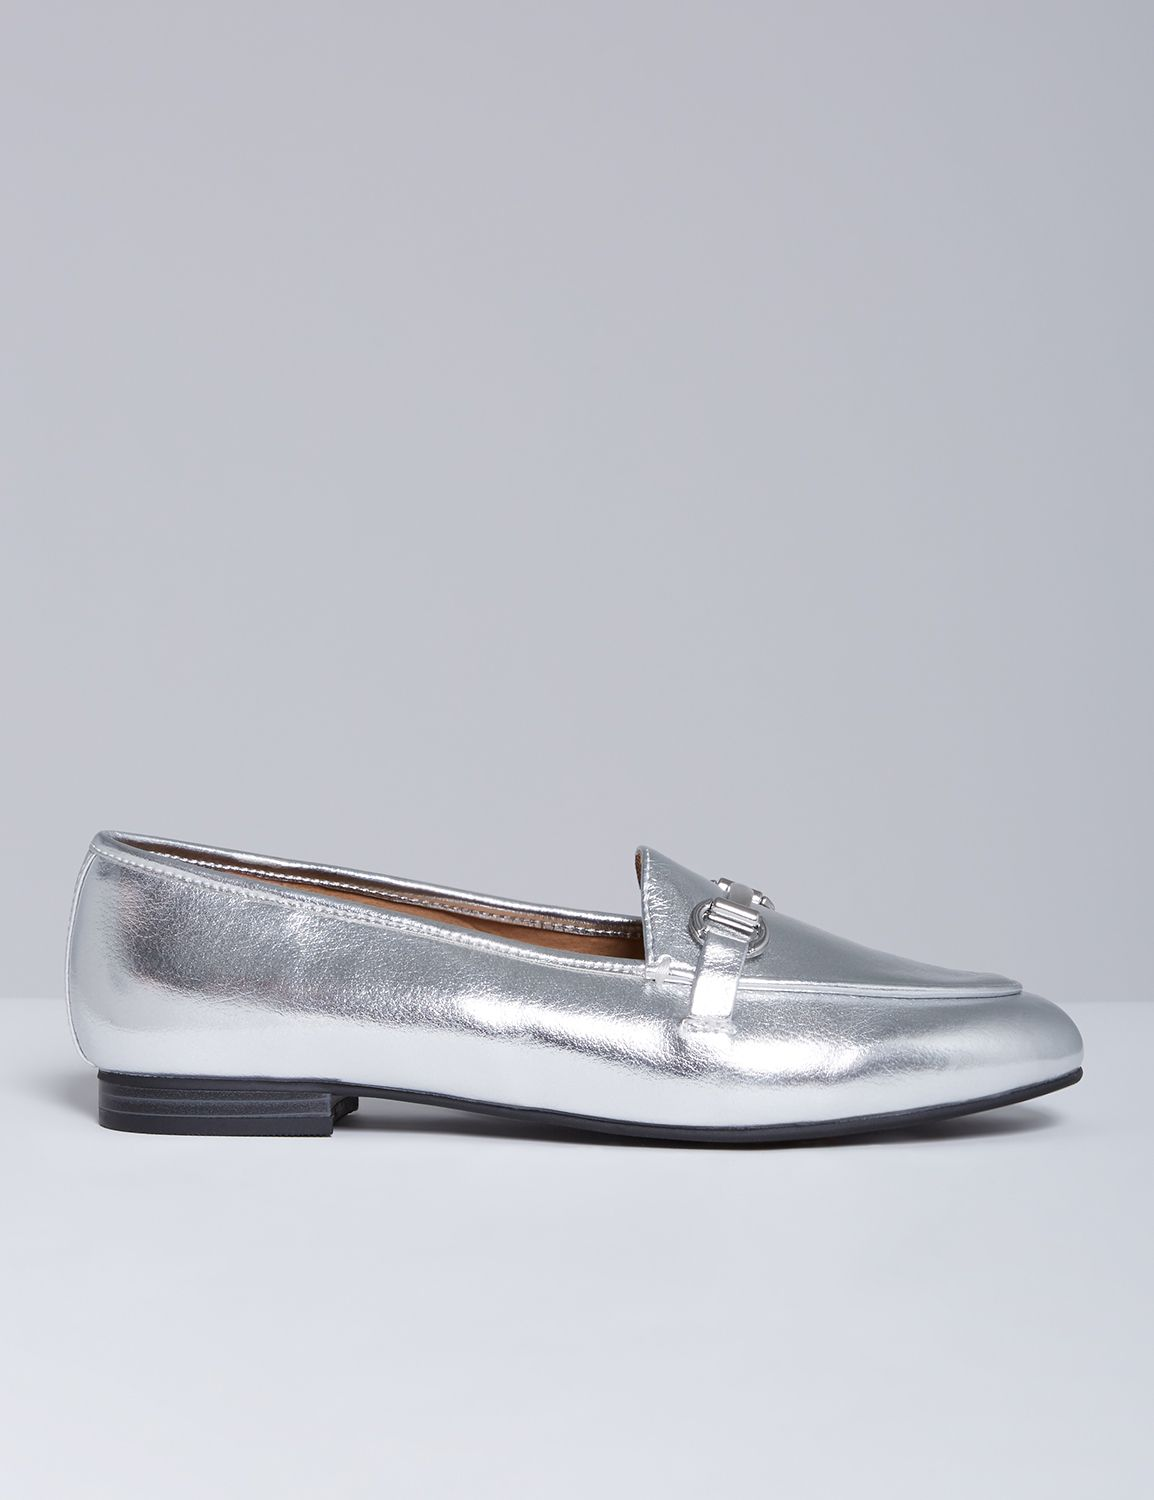 Vintage Scarves- New in the 1920s to 1960s Styles Lane Bryant Womens Loafer 8W Nine Iron $34.99 AT vintagedancer.com